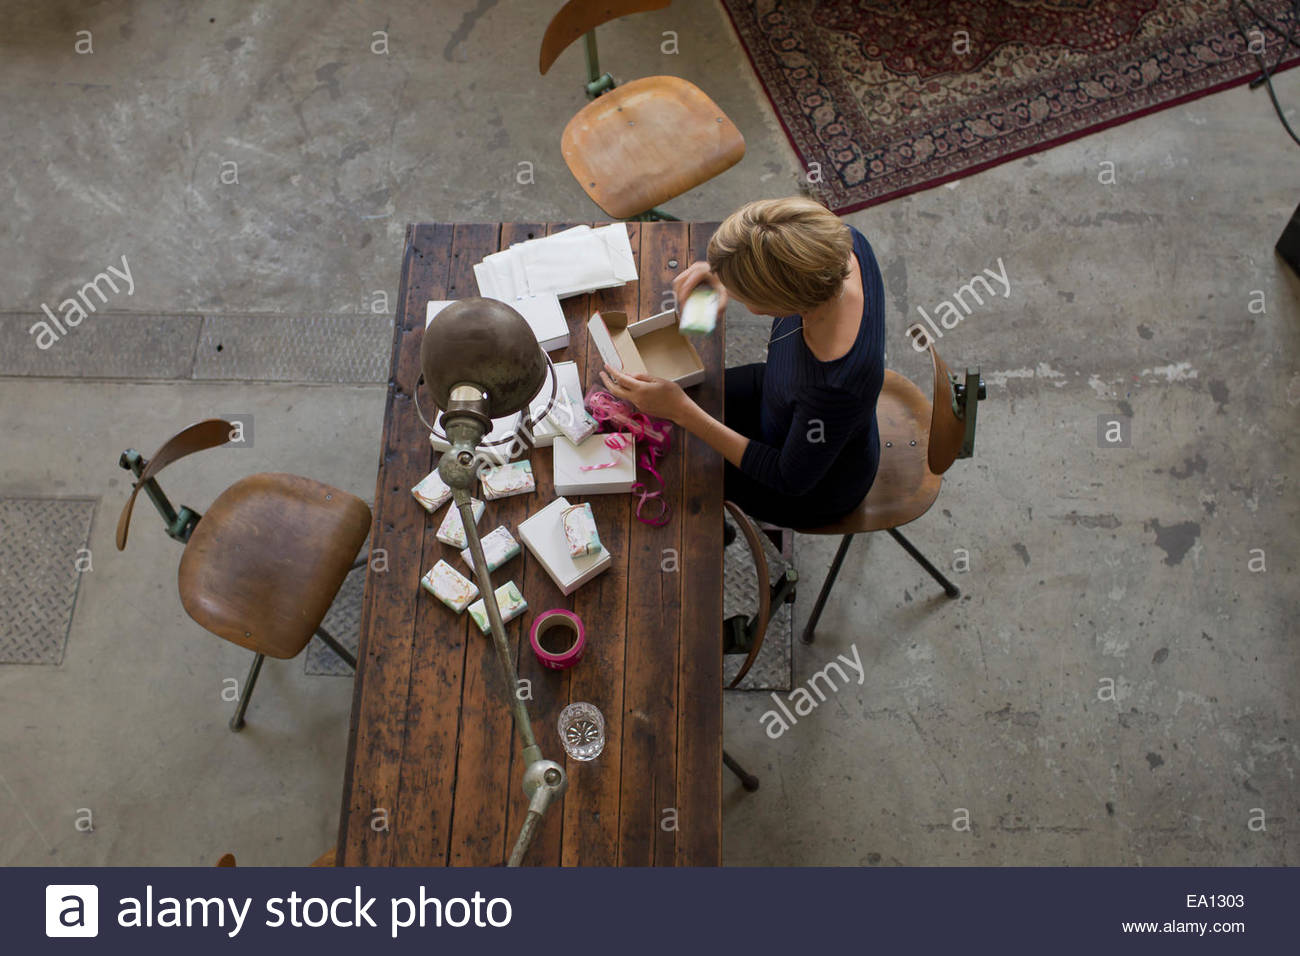 Mid adult woman working at table, high angle view - Stock Image